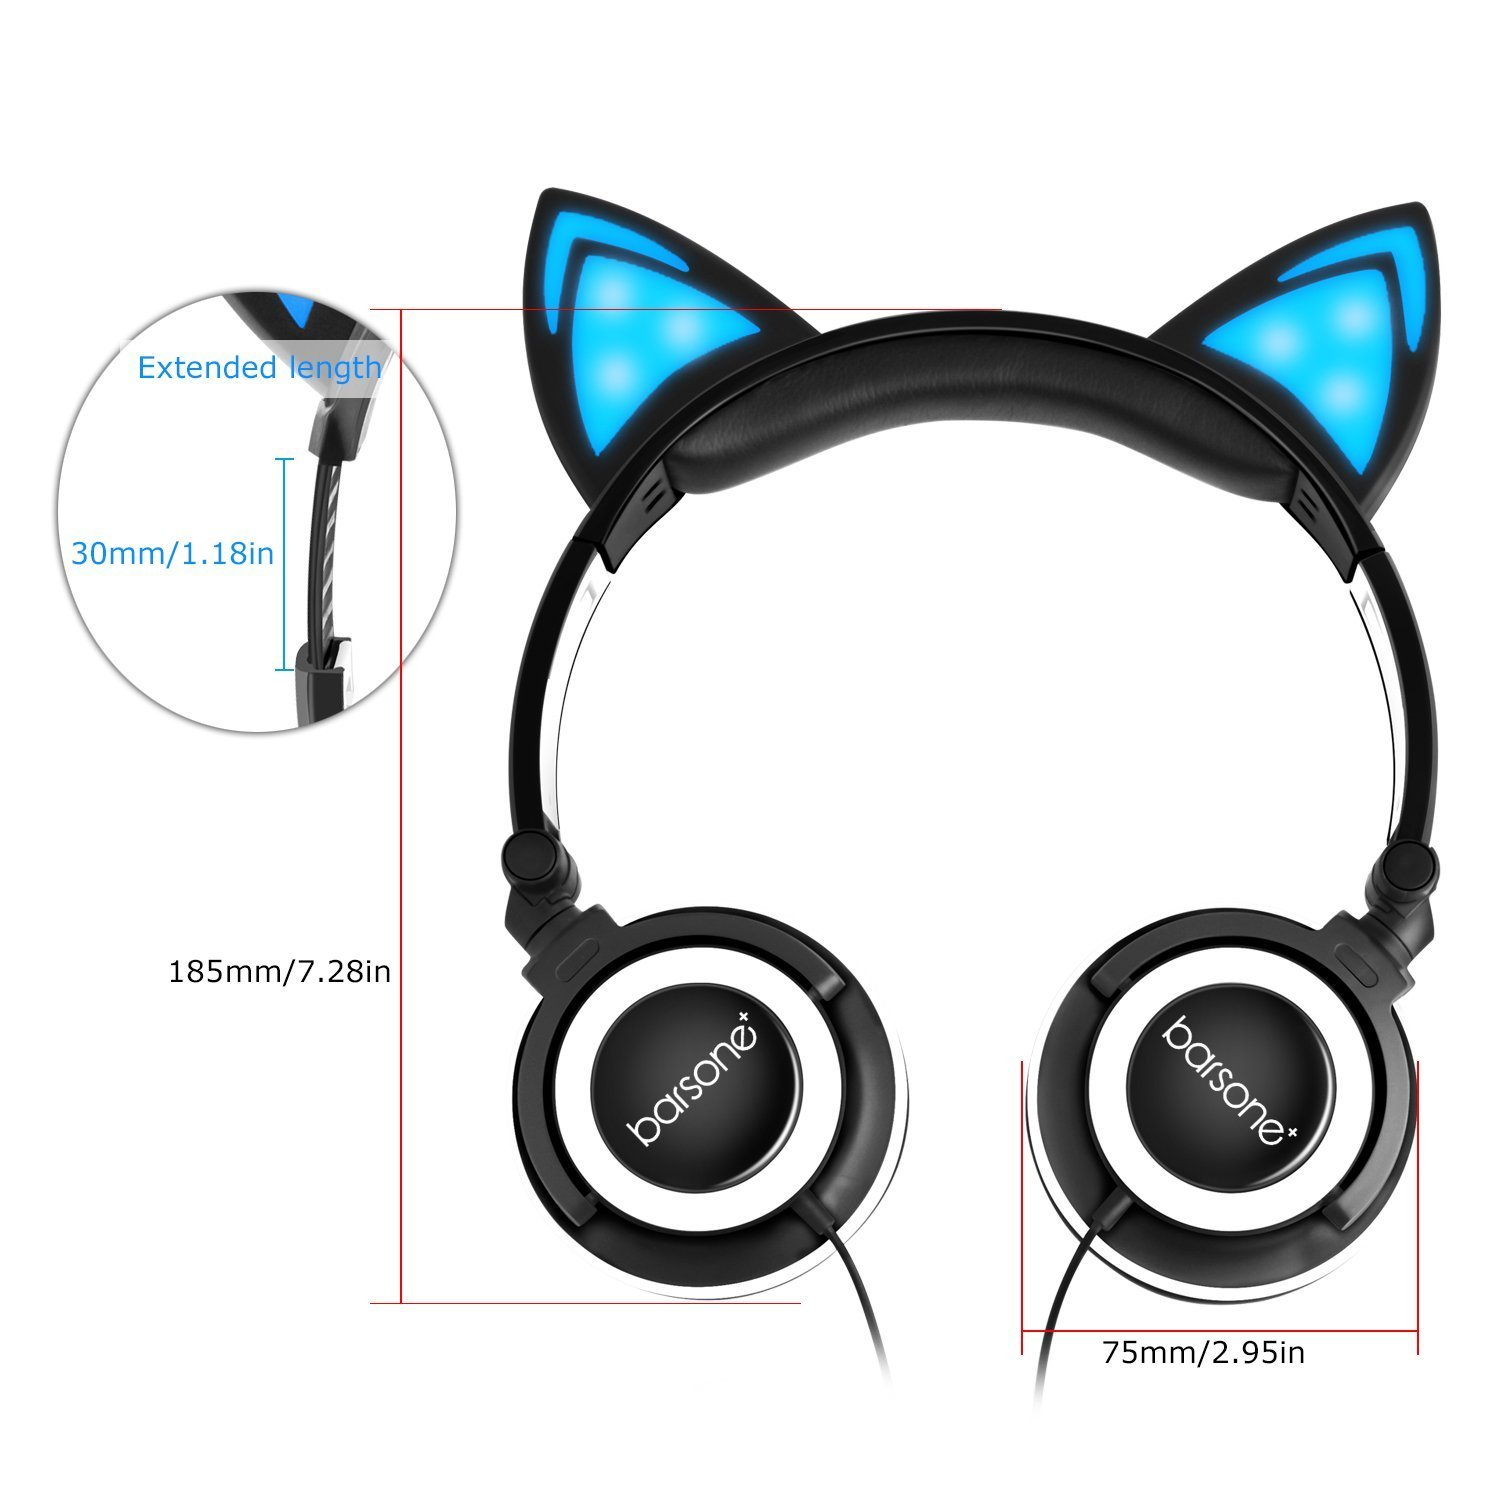 Kids Headphones, Barsone Wired Cat Ear Headphones,Foldable Cat Cosplay Earphone Over Ear Children\'s Headsets With Glowing Light, Girls/Boys/Young people Cute Headphones, Compatible for all smart phones and tablets (Black)